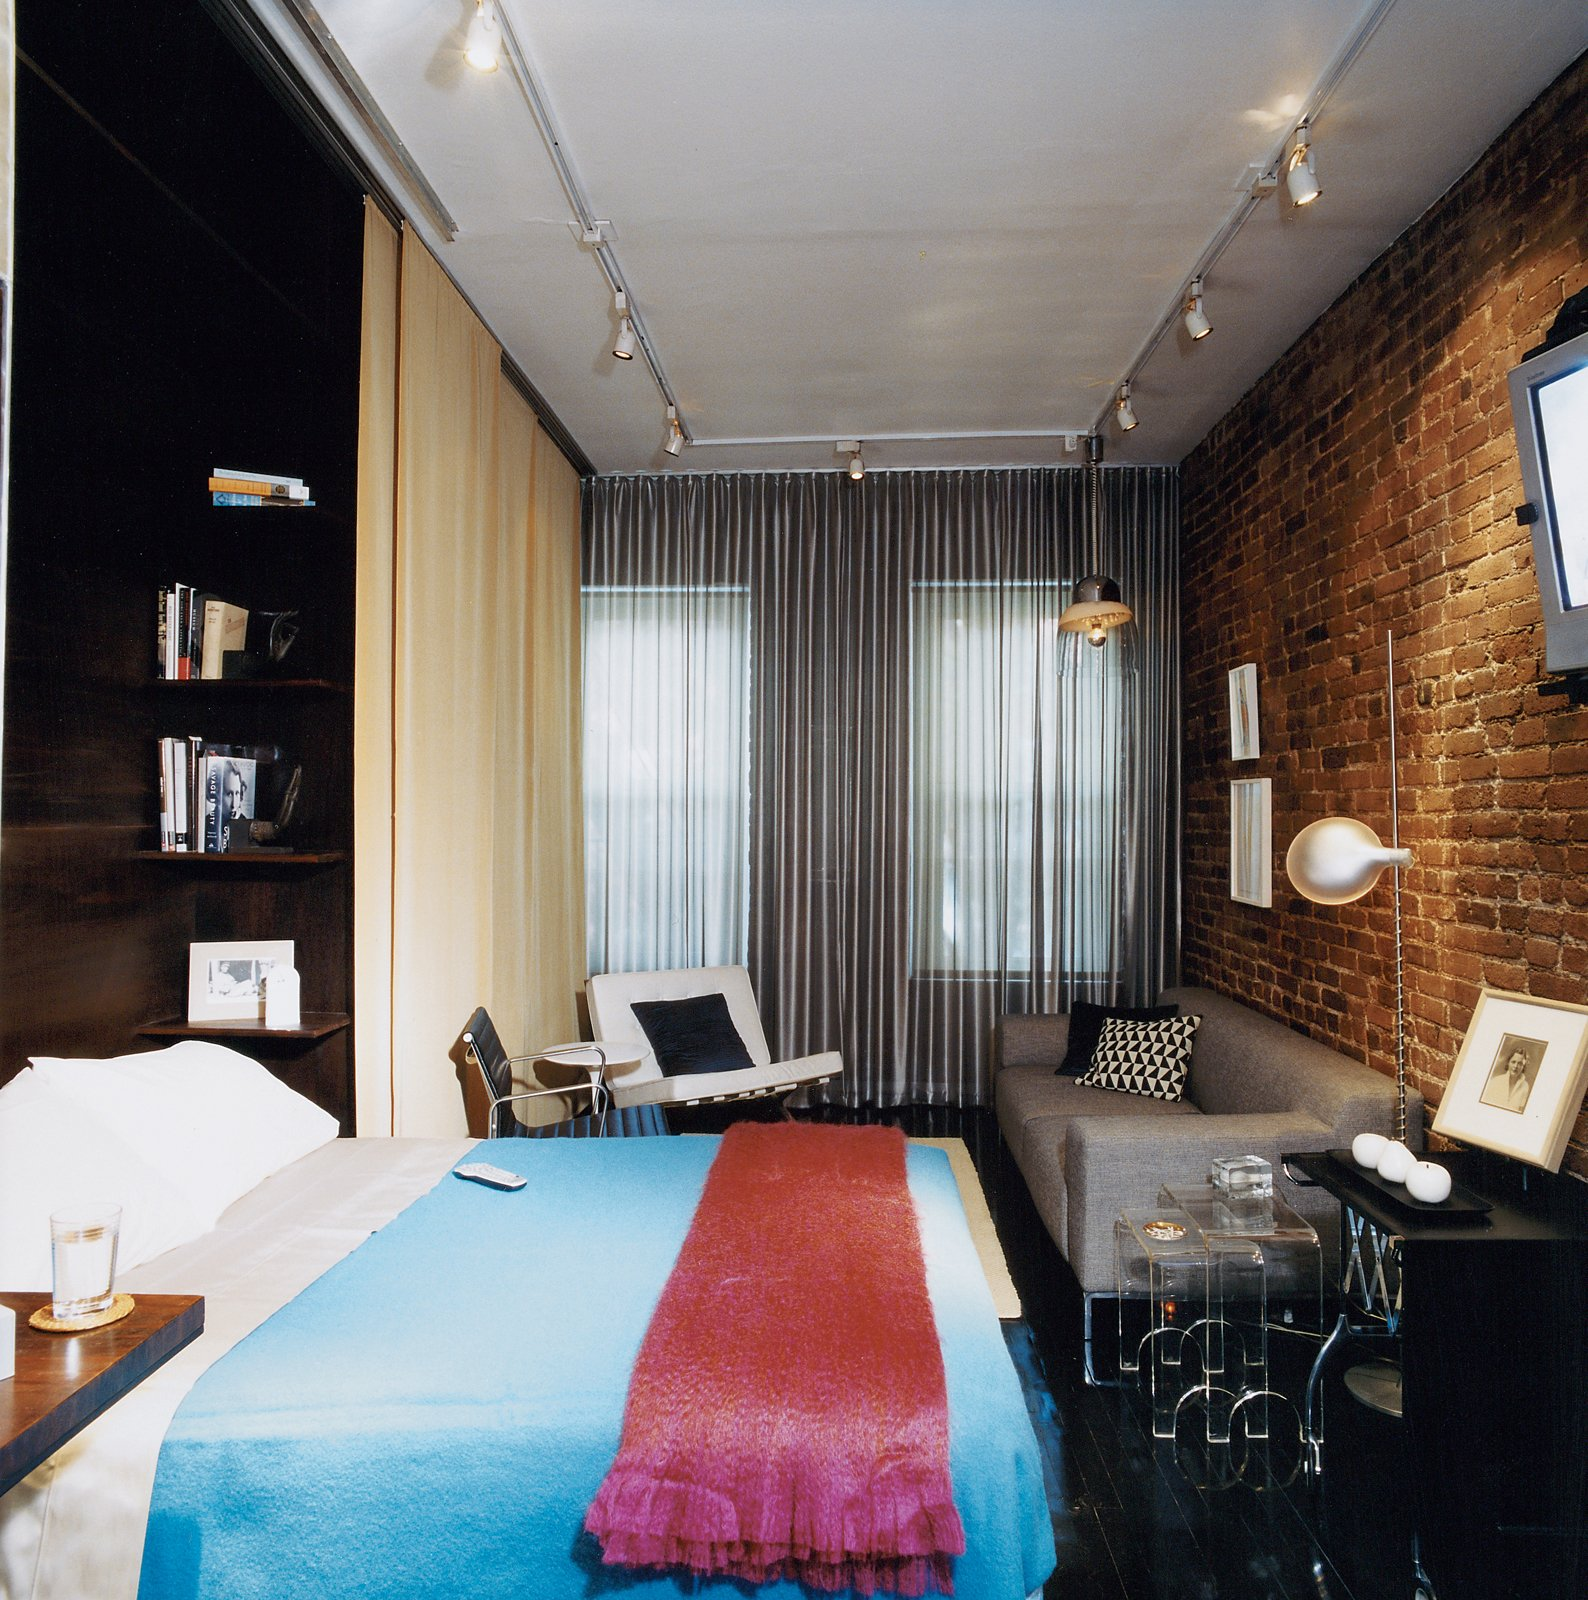 """""""I think of the bed as intimate space,"""" Hughston says, """"and putting the bed away—having it out of sight when not in use—is satisfying."""" The custom-designed Murphy bed, concealed by day behind the gold curtain is well built; it's ergonomically easy to lower and has a firm sleeping surface. Tagged: Bedroom, Bed, Shelves, Track Lighting, Dark Hardwood Floor, Pendant Lighting, Night Stands, and Chair.  Tiny Apartments in New York City by Allie Weiss from A 400-sq-ft New York Apartment Gets a Second Chance"""